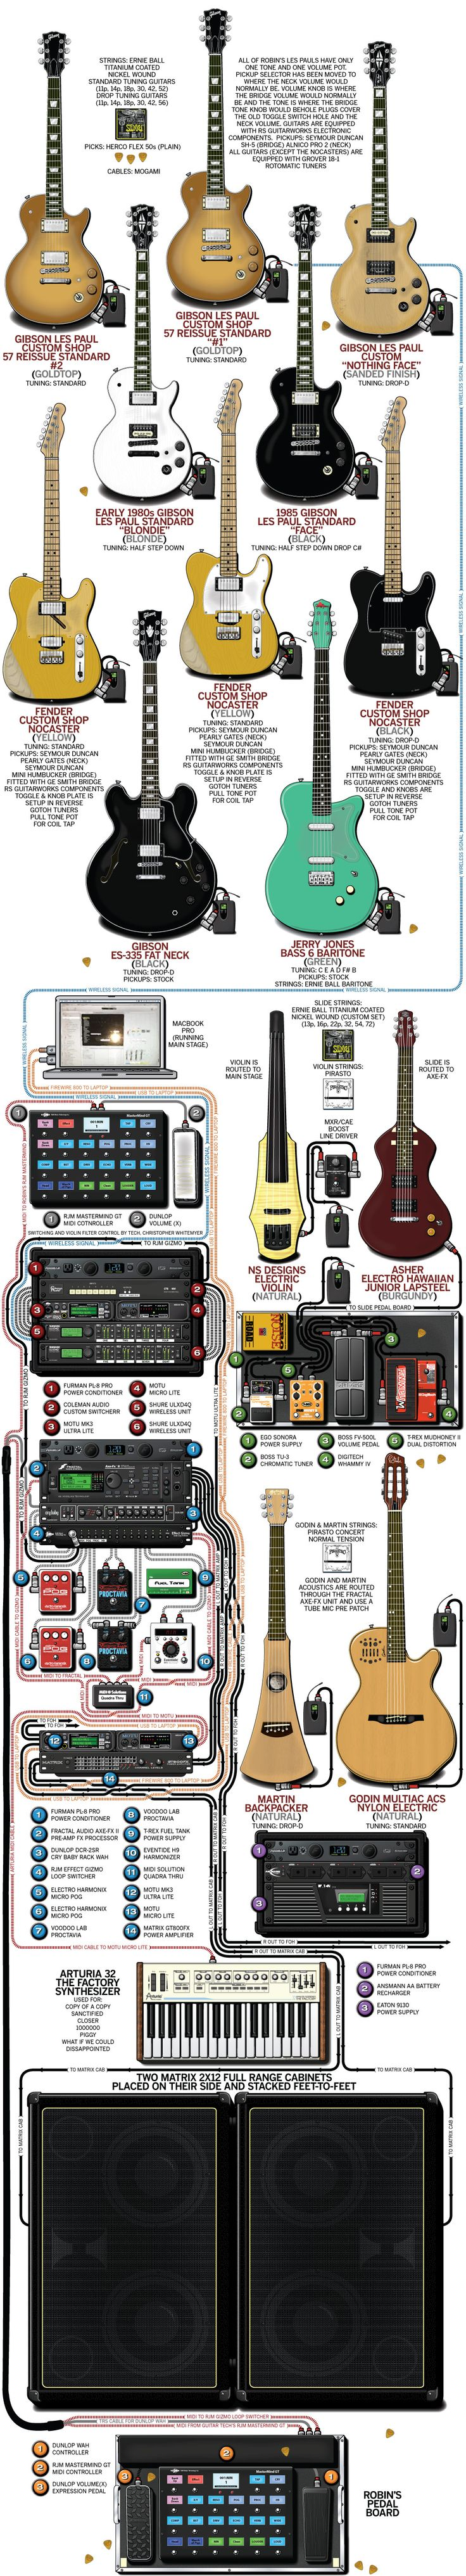 Robin Finck - http://www.guitargeek.com/robin-finck-nine-inch-nails-guitar-rig-and-gear-setup-2014/